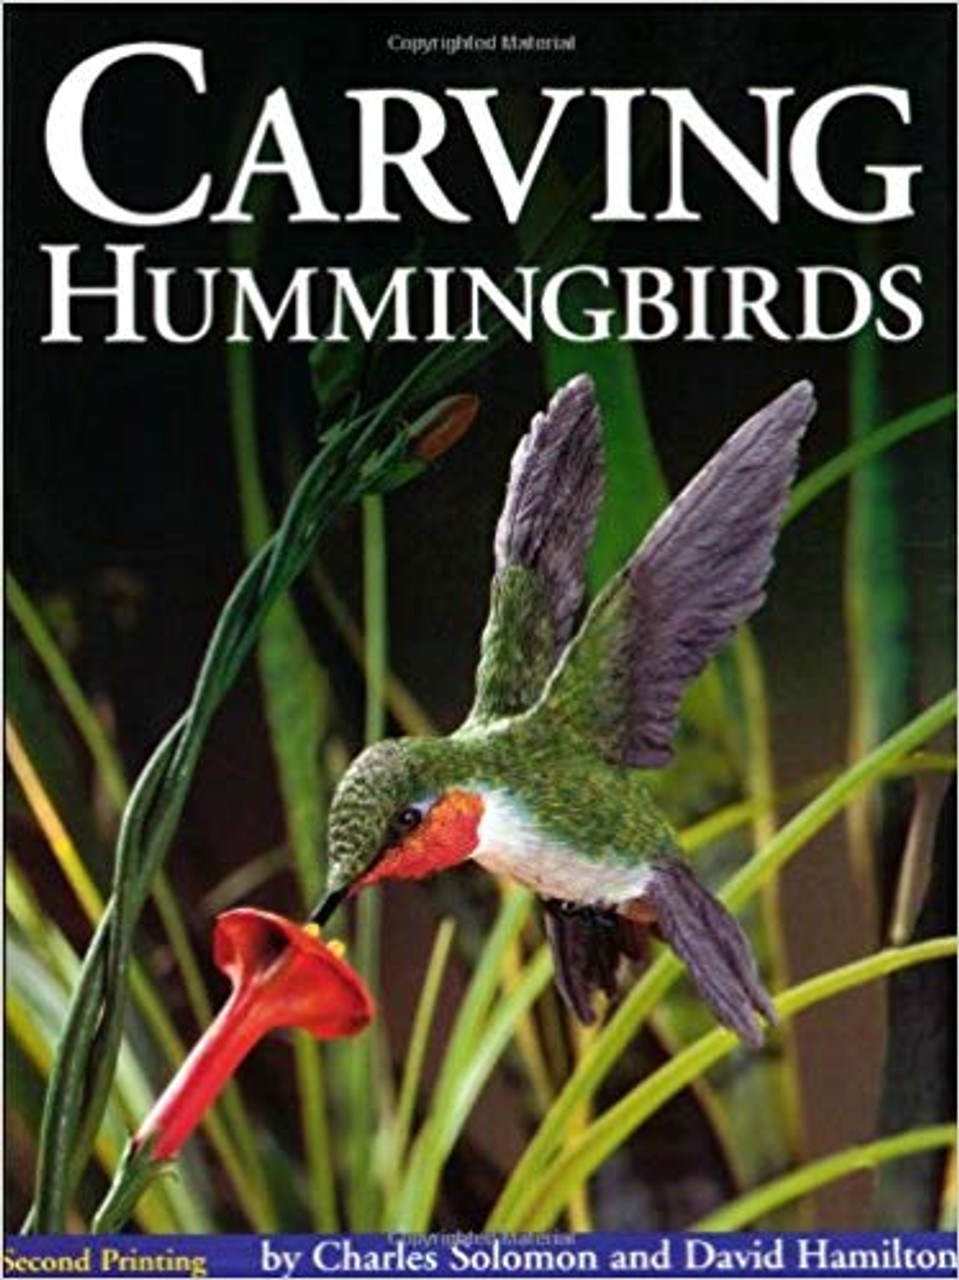 Carving Hummingbirds  showing a Hummingbird feeding from a flower.